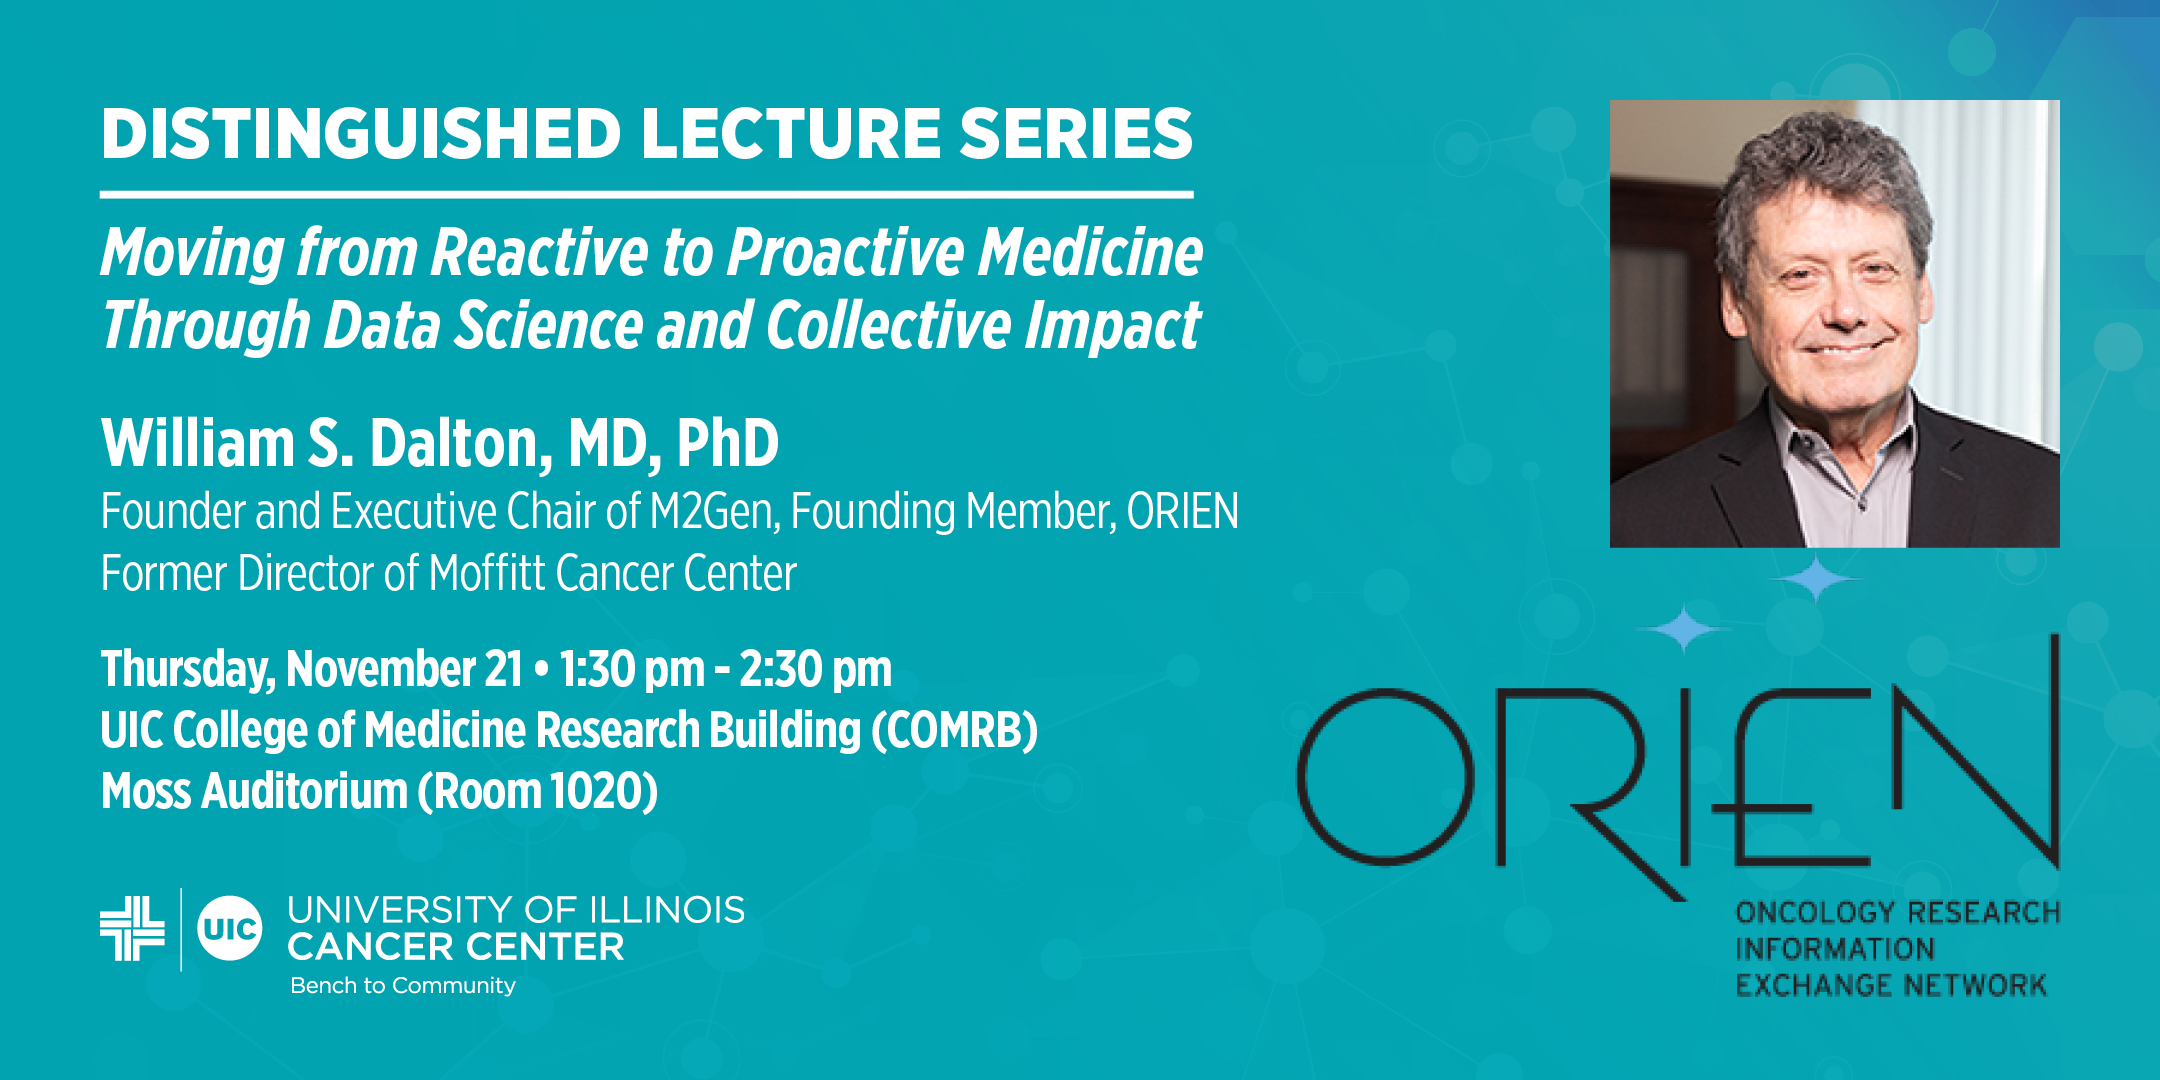 ORIEN Oncology Research Information Exchange Network Distinguished Lecture Series Event